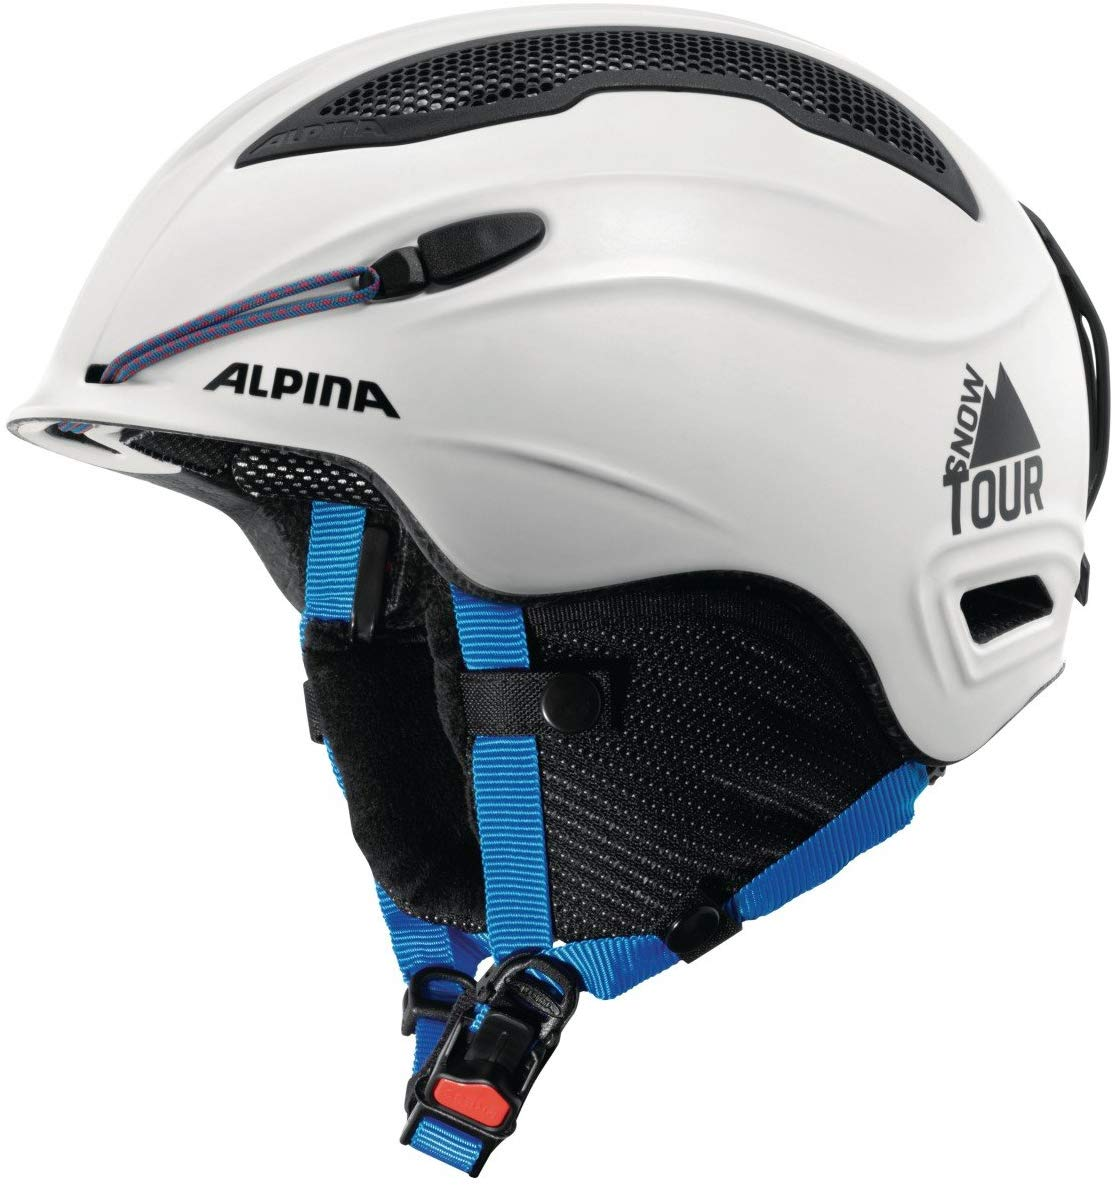 ALPINA Erwachsene Snow Tour Skihelm, White-Blue matt, 55-59 cm